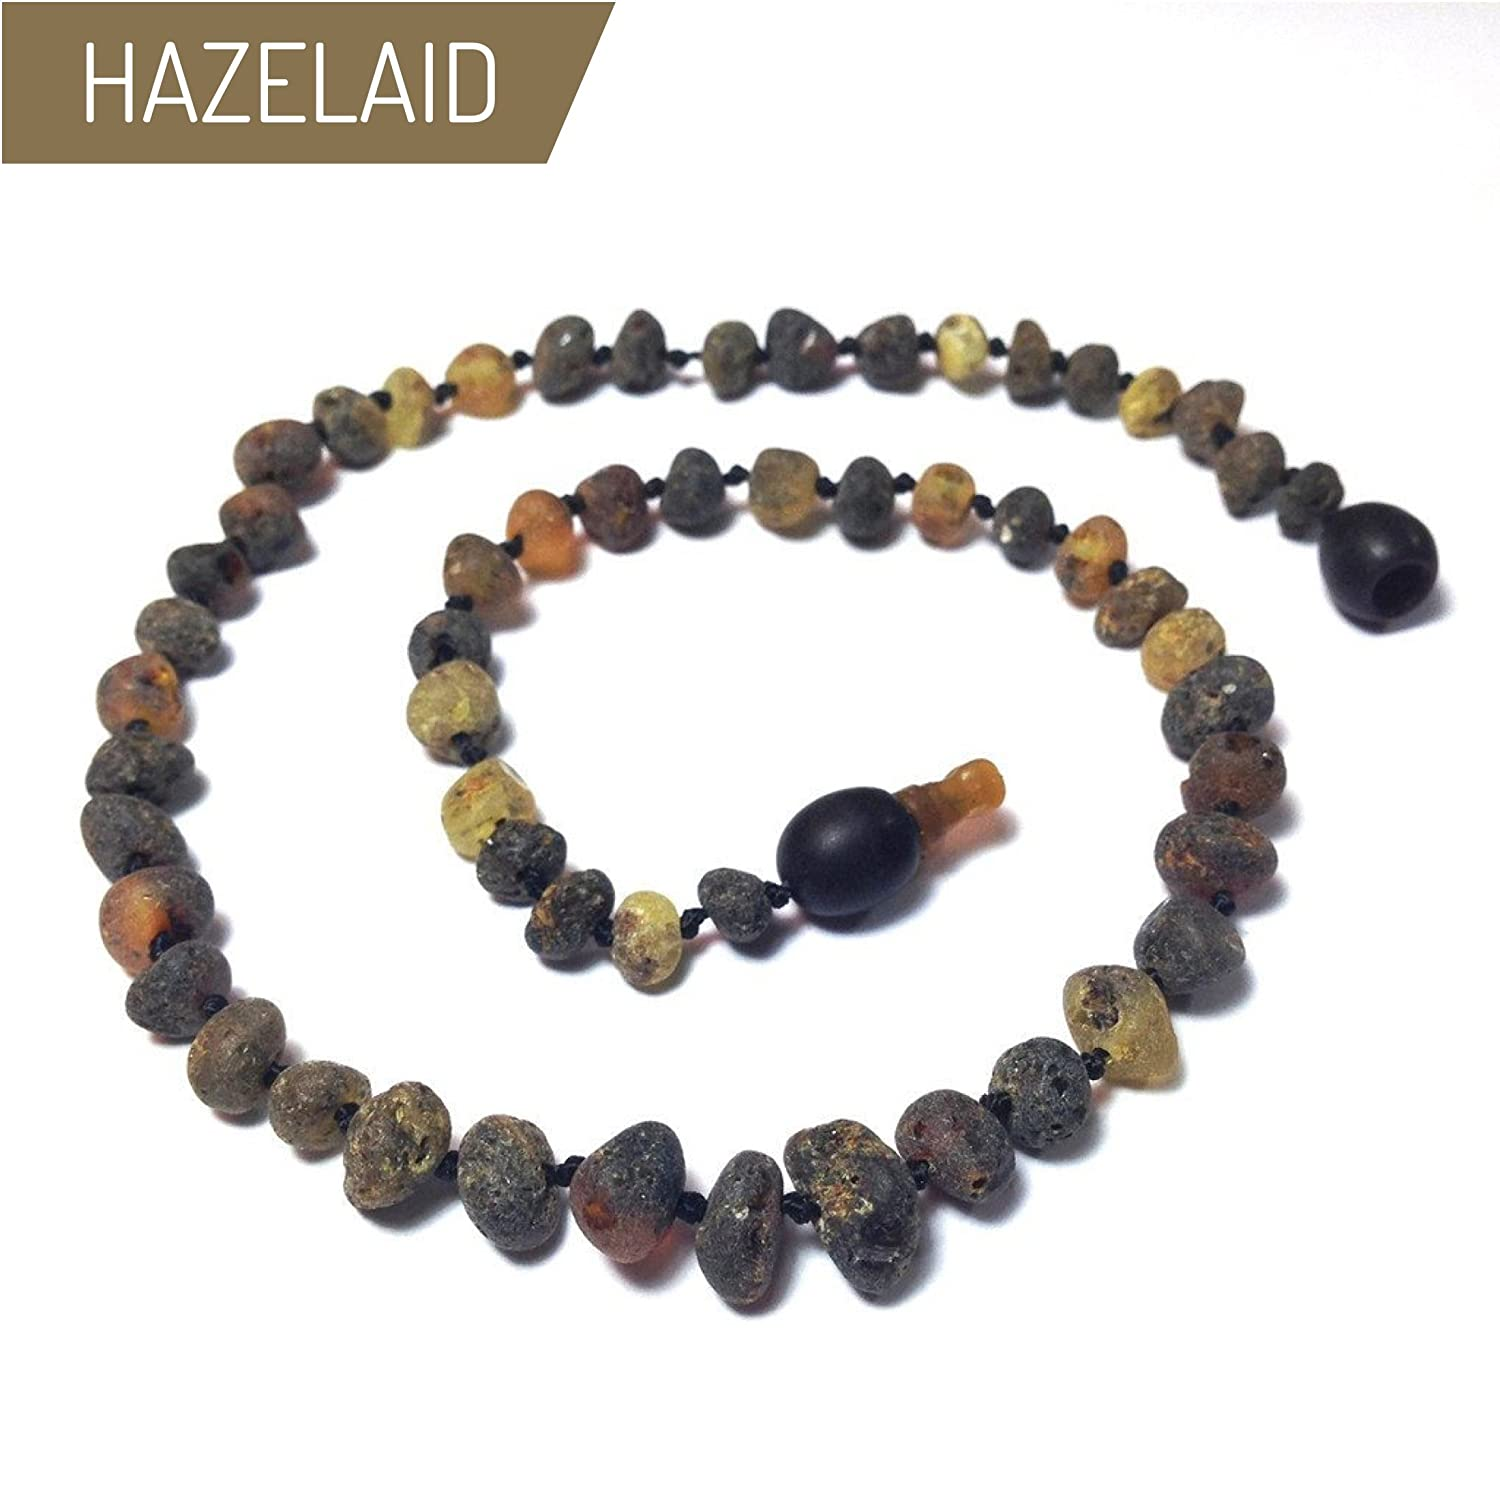 Hazelaid (TM) 12 Pop-Clasp Baltic Amber Asteroid Necklace